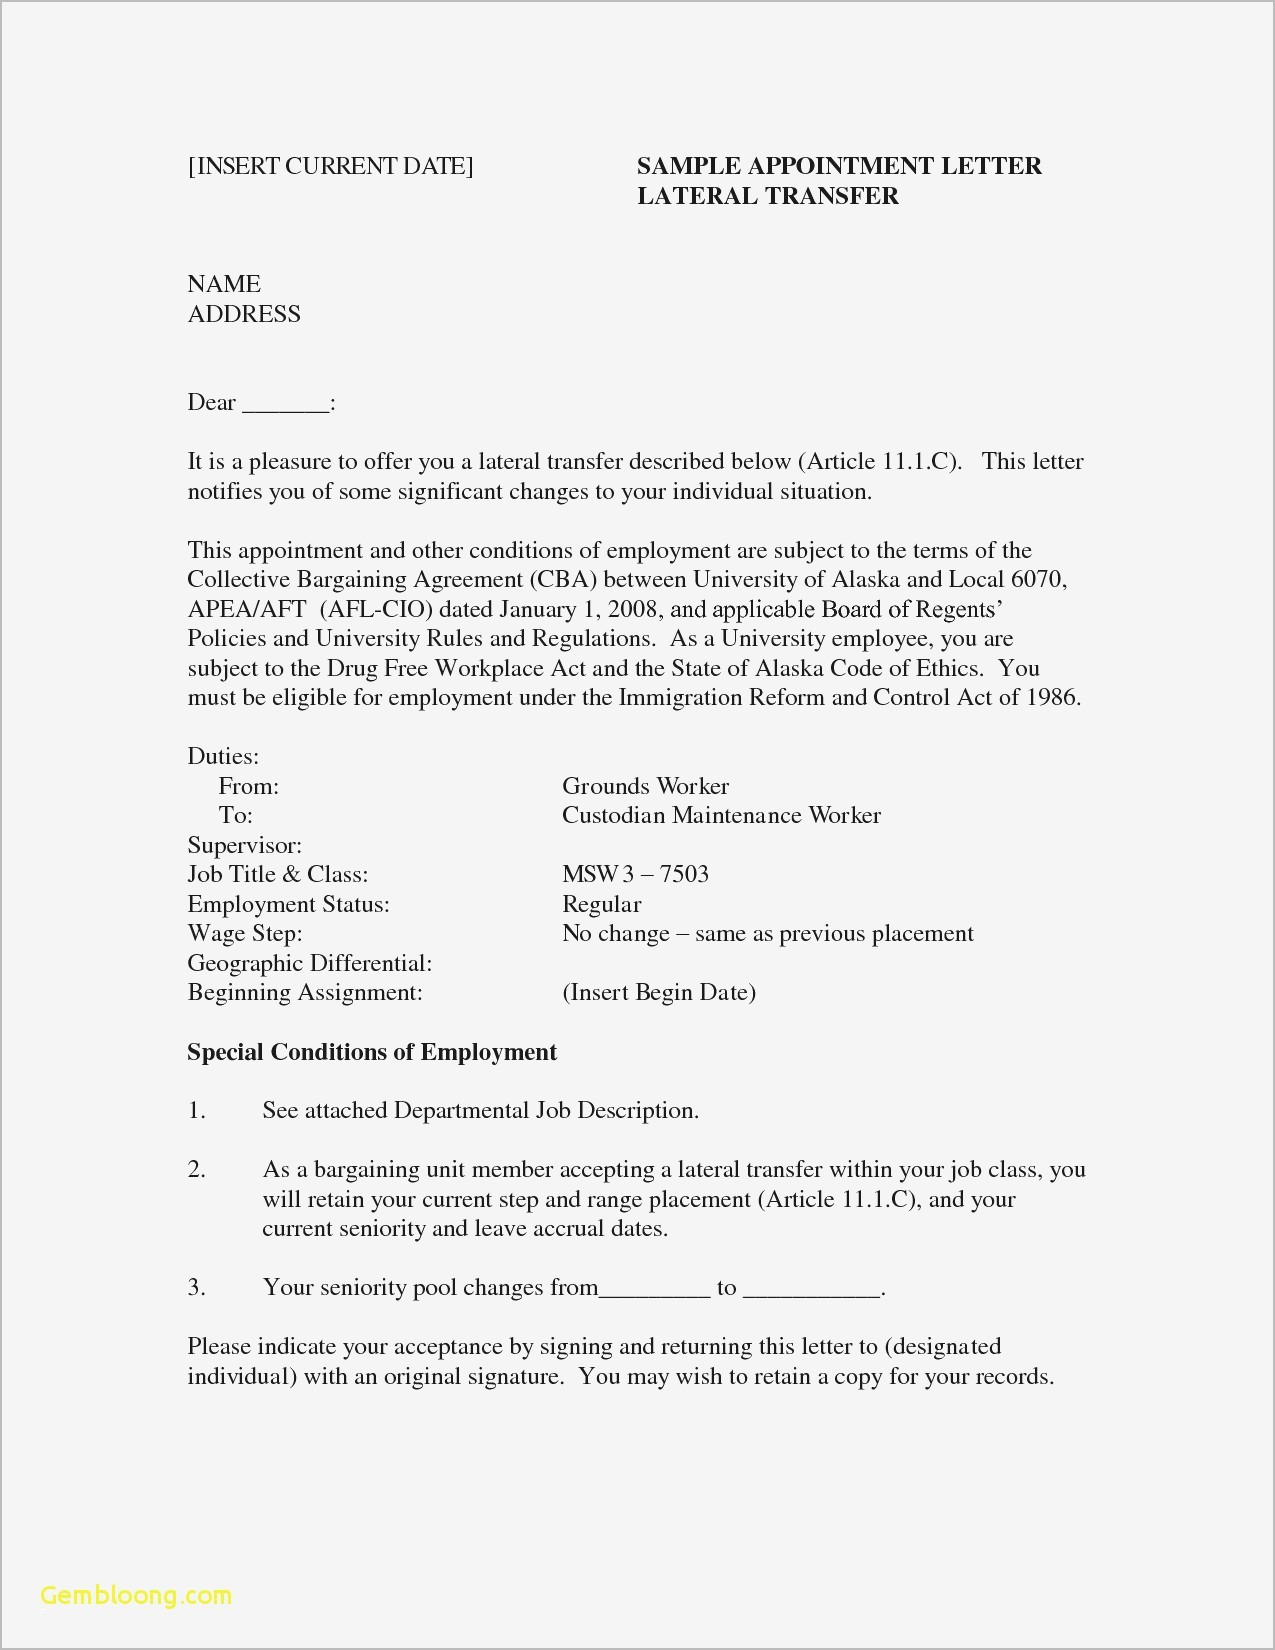 theatrical resume template example-Sample Chronological Resume Format Free Downloads Best Actor Resume Unique Actor Resumes 0d Acting Resume Format 4-j